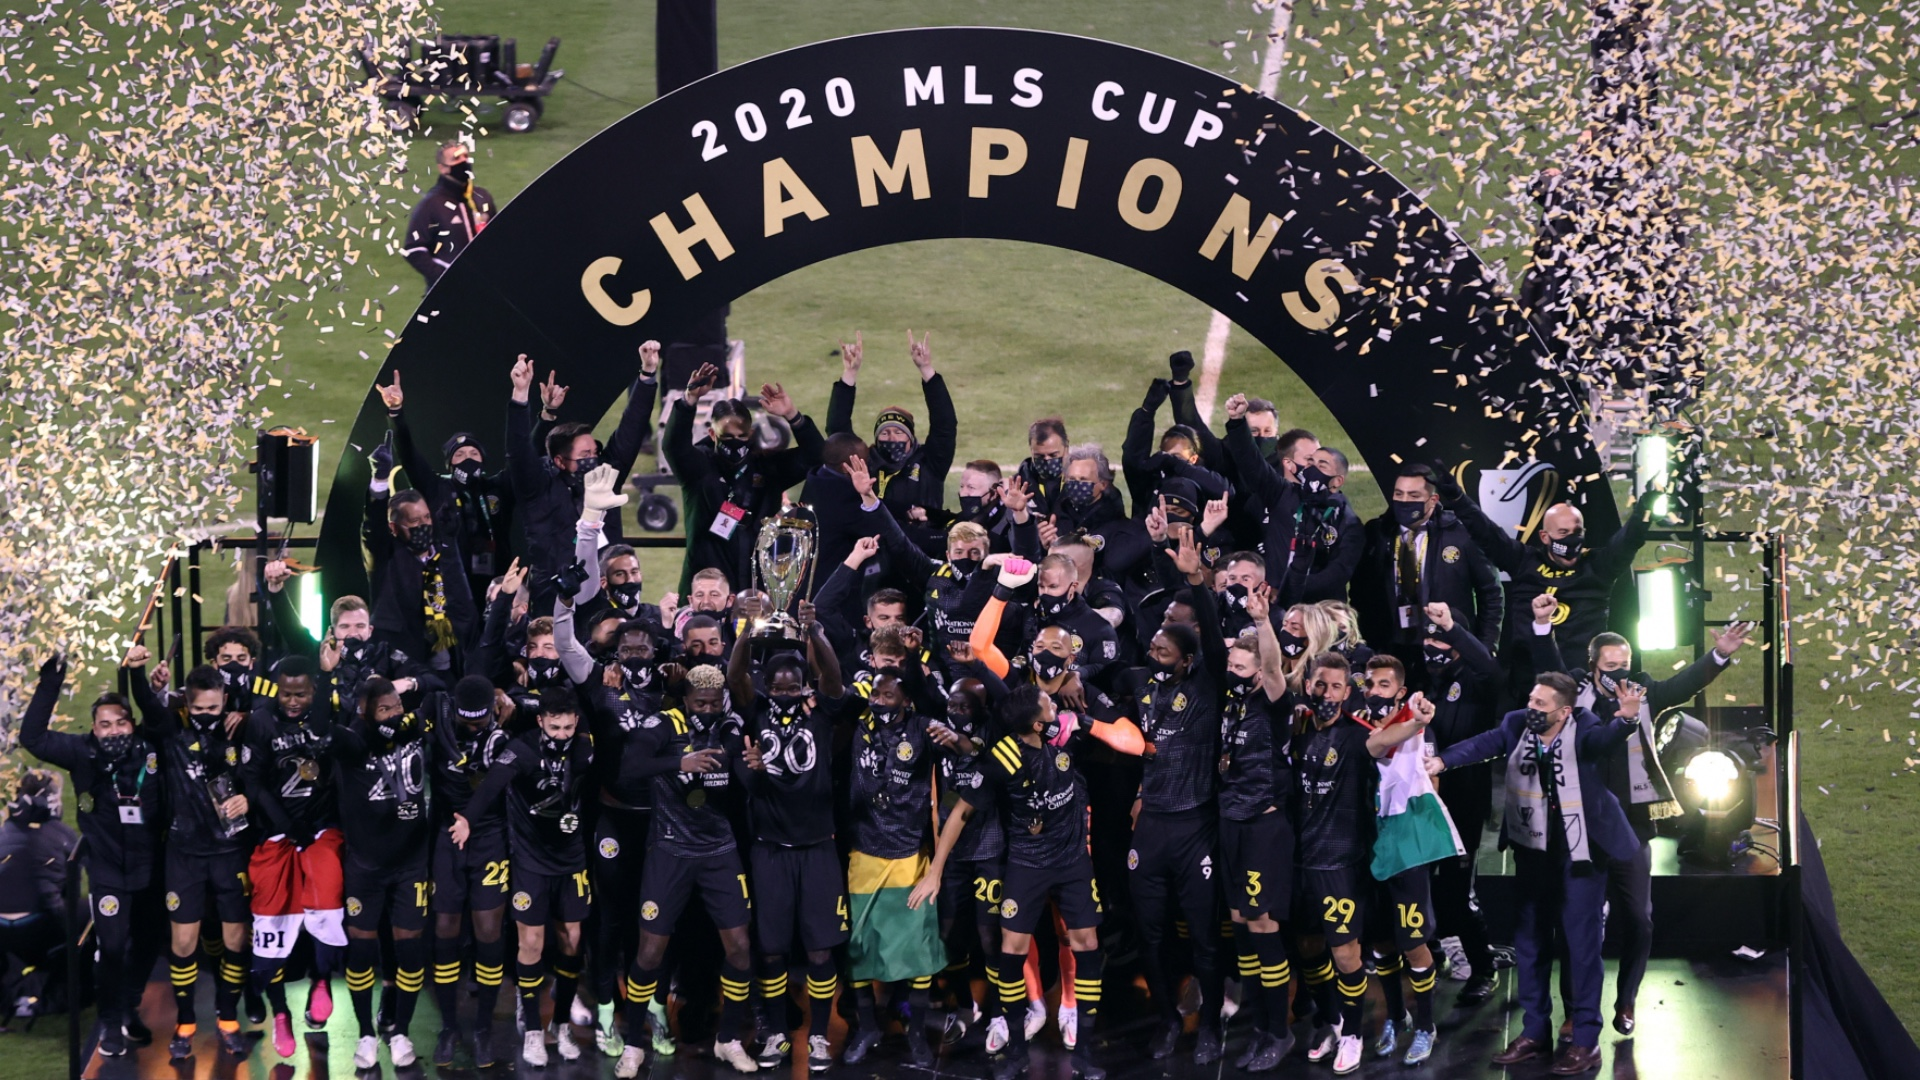 When the MLS season begins after a rare Columbus Crew replay, the league needs to take advantage of the opportunity to take the next step